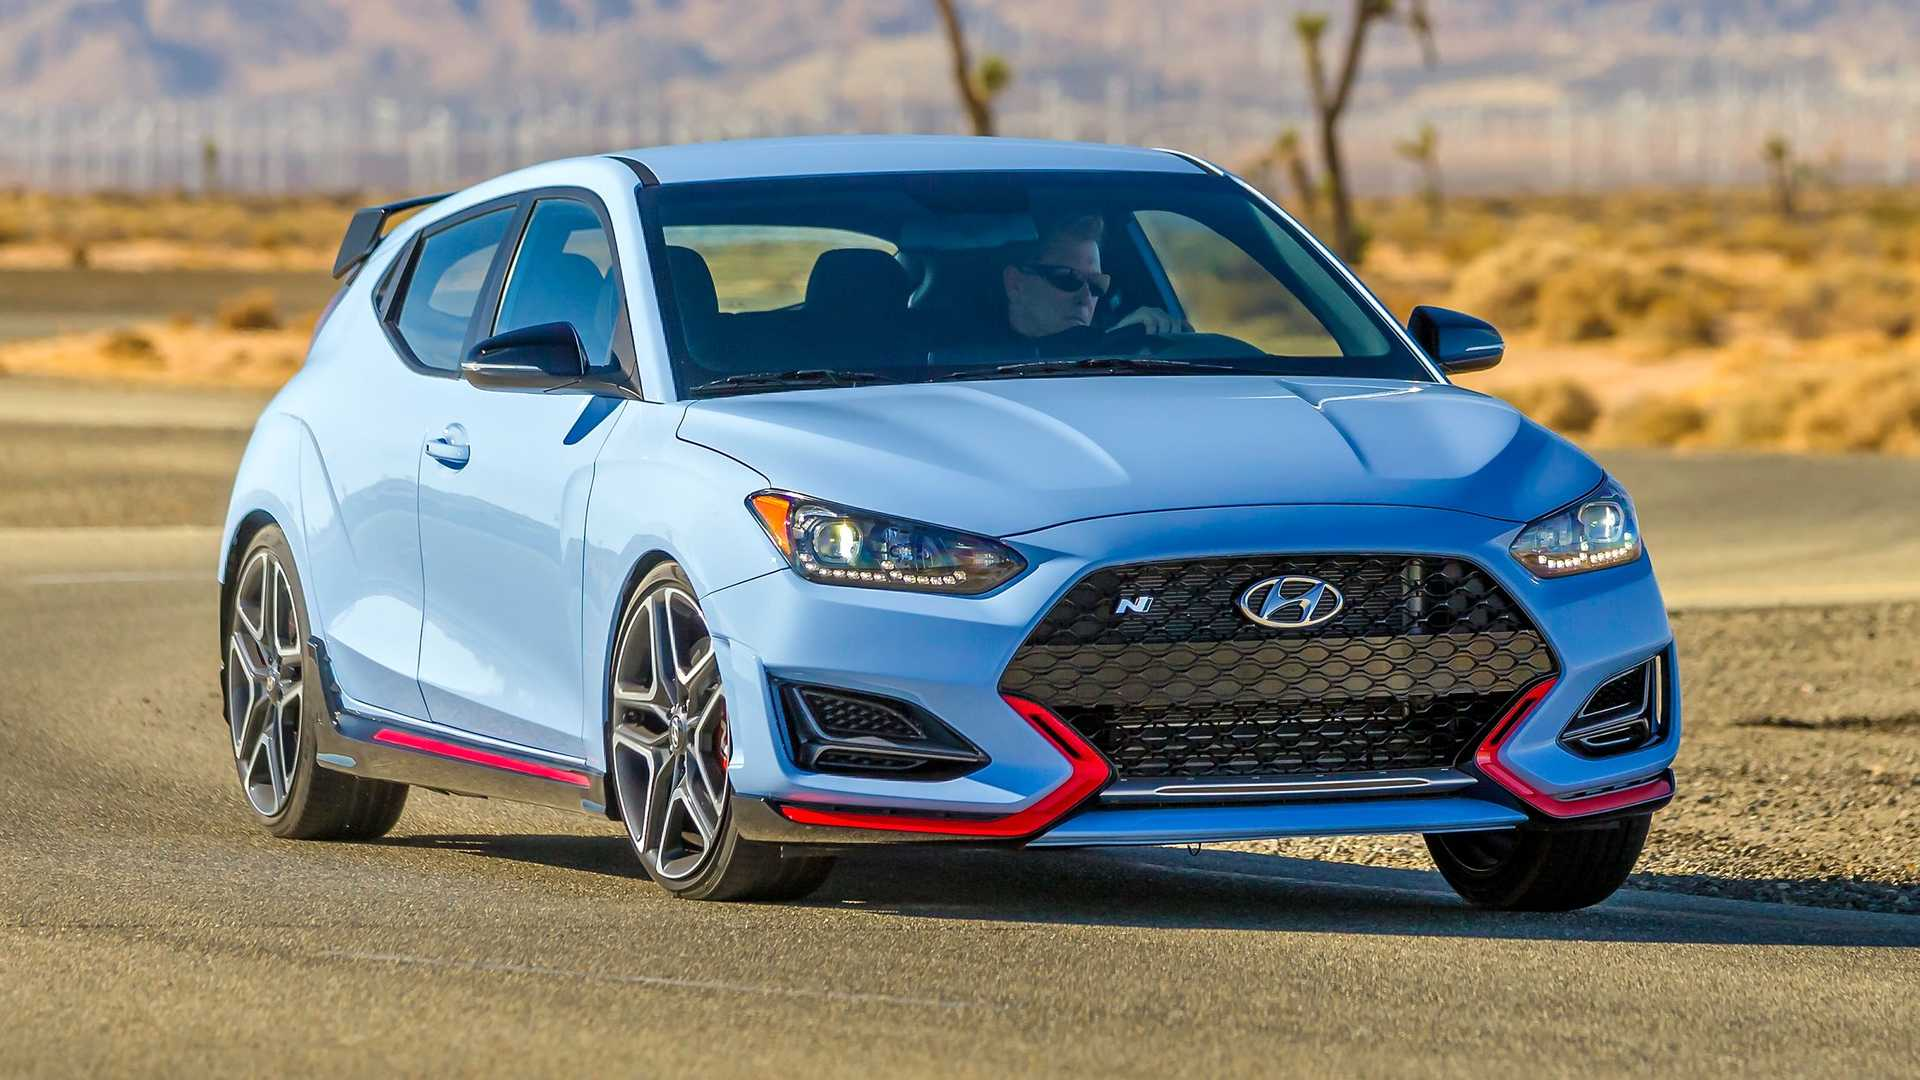 2021 Hyundai Veloster N Features 8-Speed DCT And Improved ...